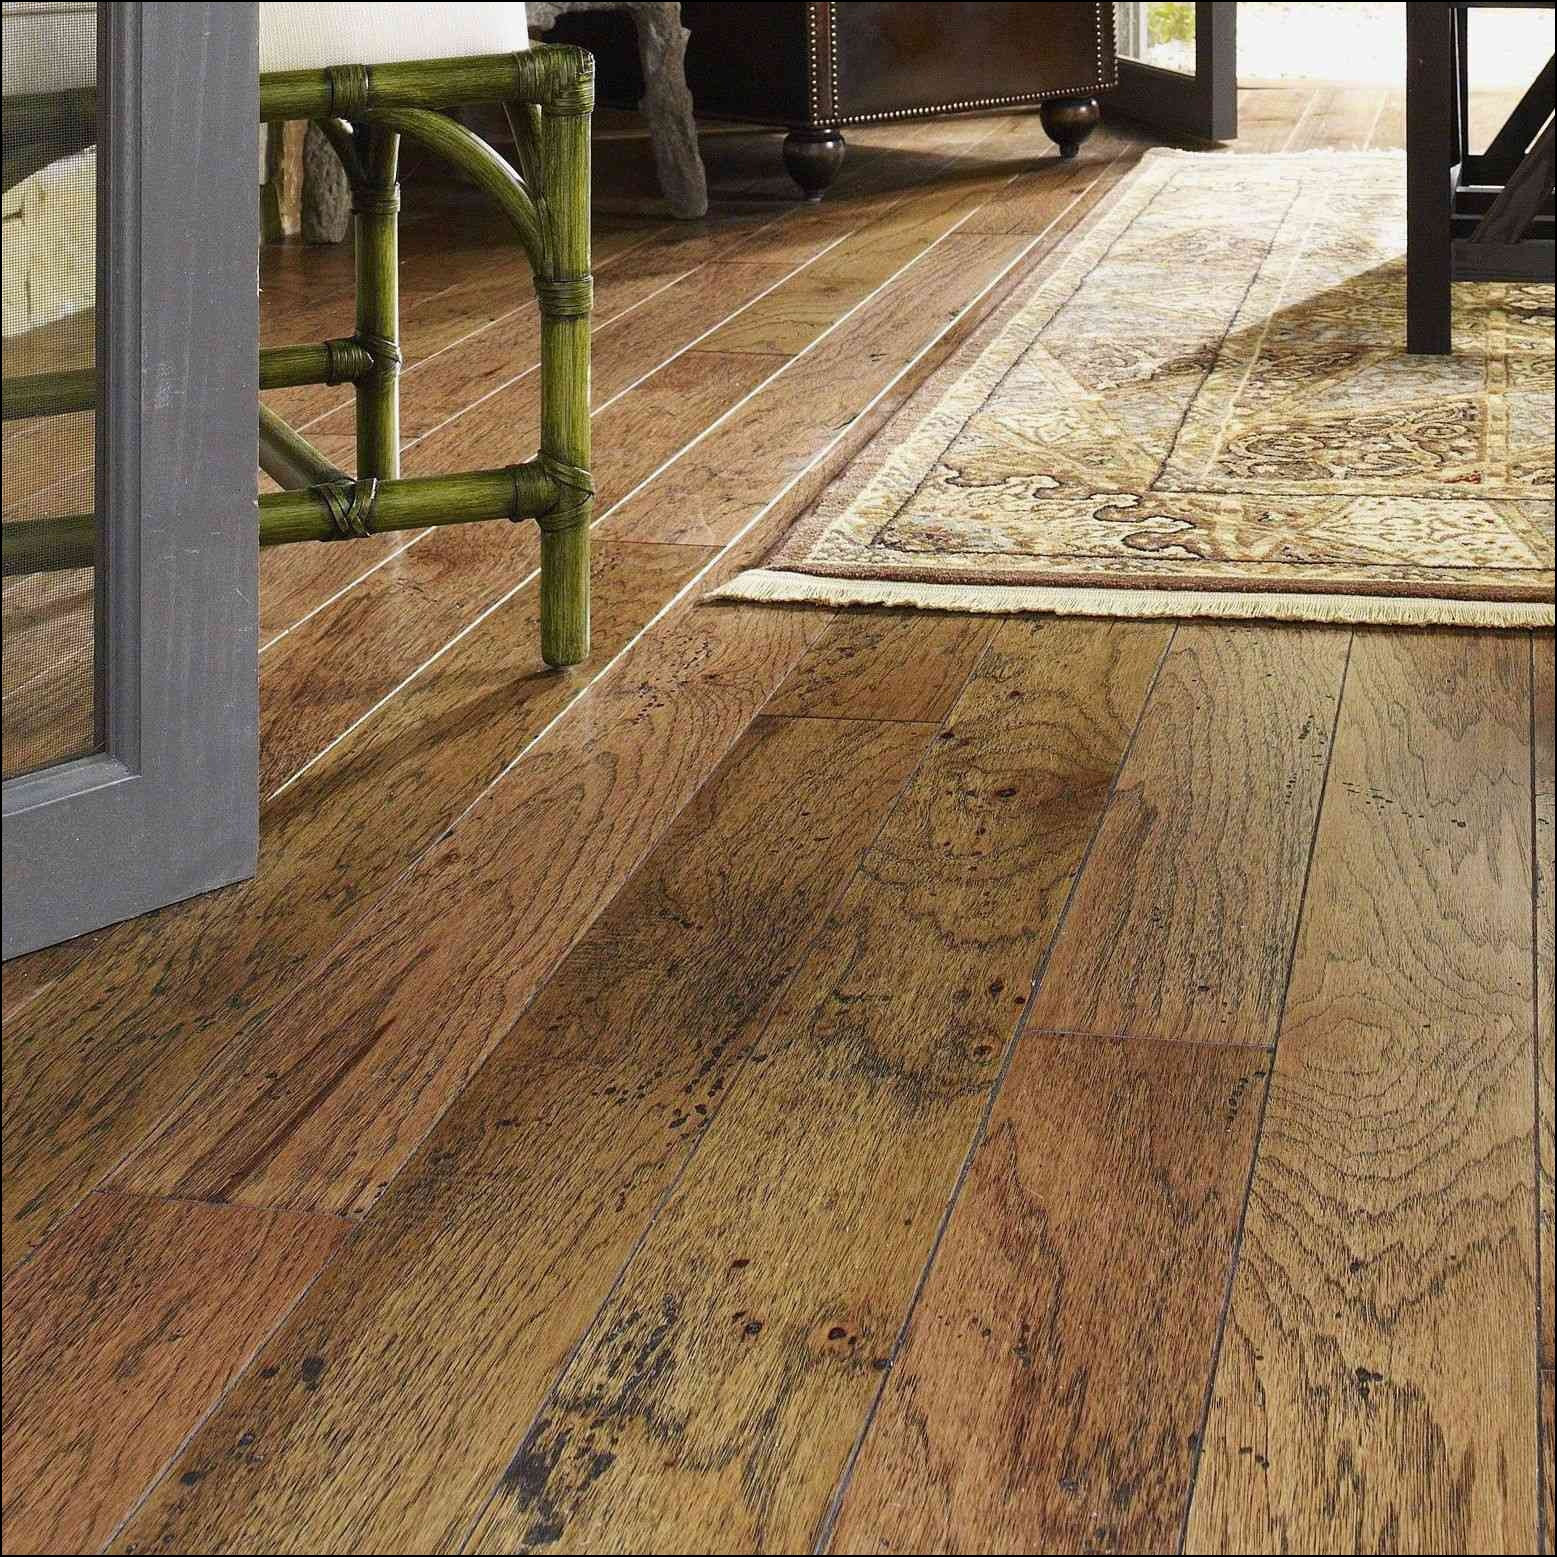 best quality engineered hardwood flooring reviews of what is flooring ideas throughout what is the best gym flooring images best type wood flooring best floor floor wood floor